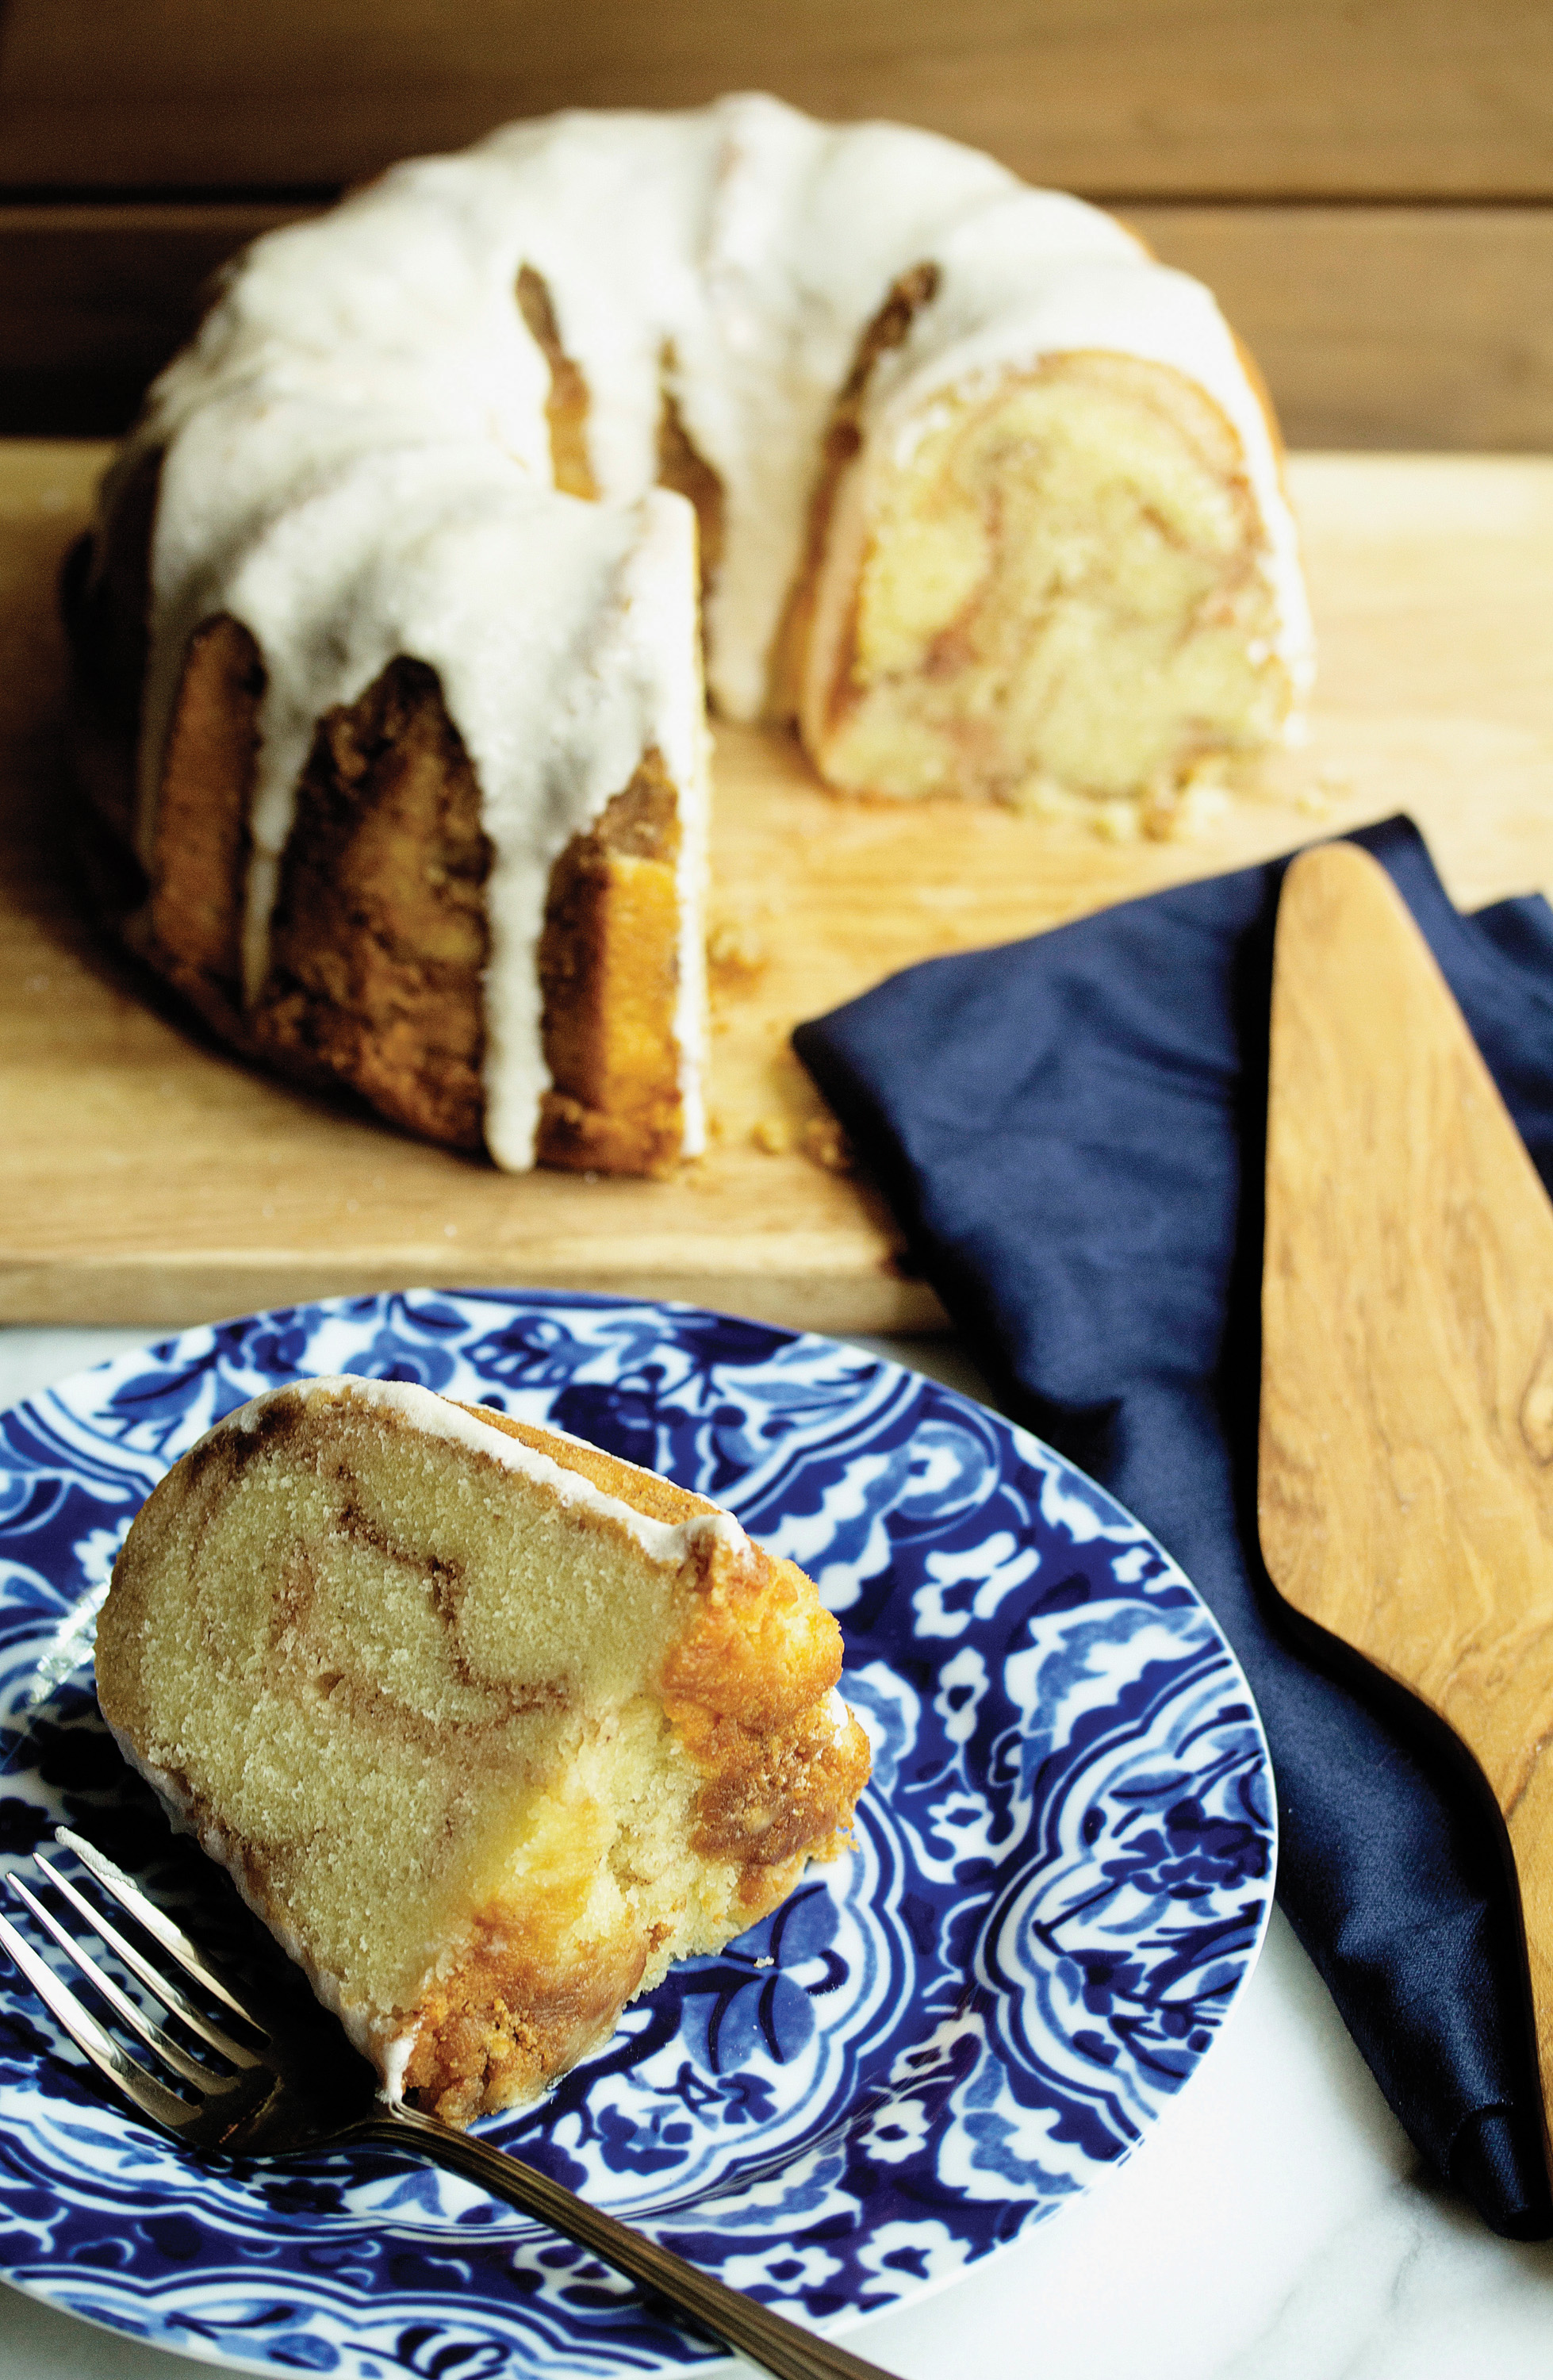 Learn how to make this delicious Cinnamon Roll Pound Cake by clicking the image above!